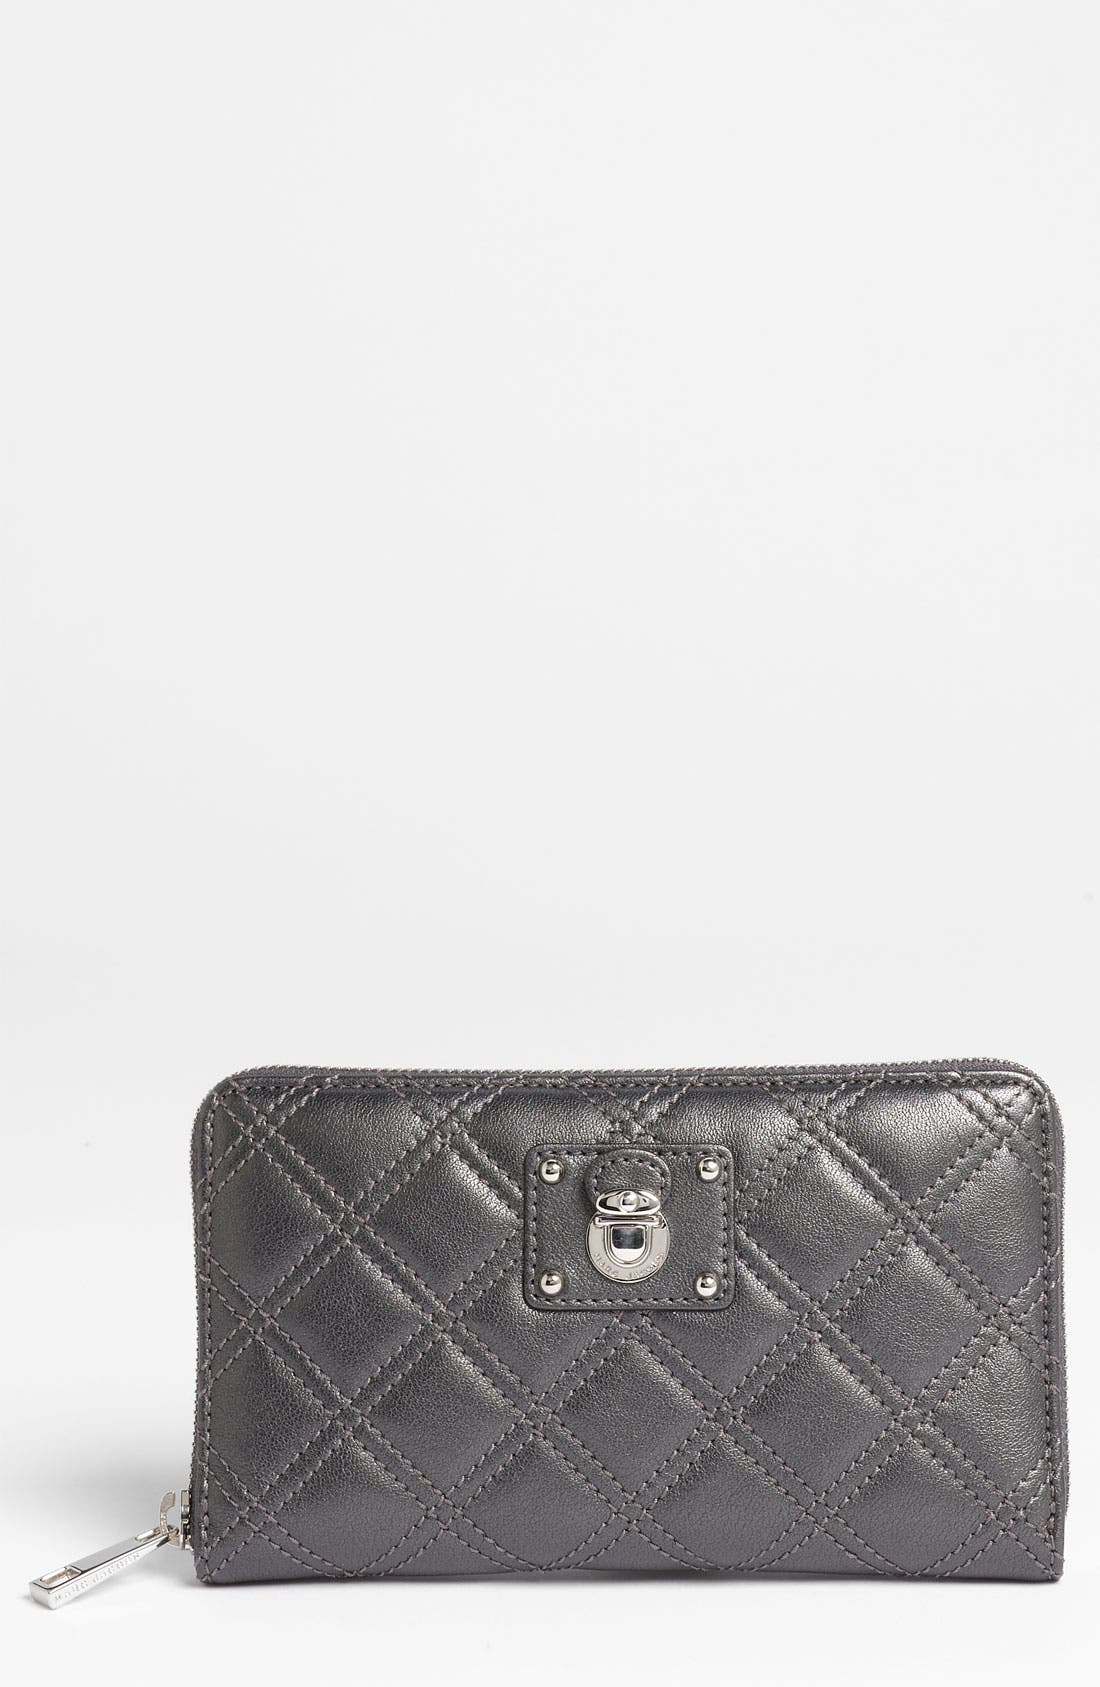 Main Image - MARC JACOBS 'Quilting Hudson' Leather Wallet